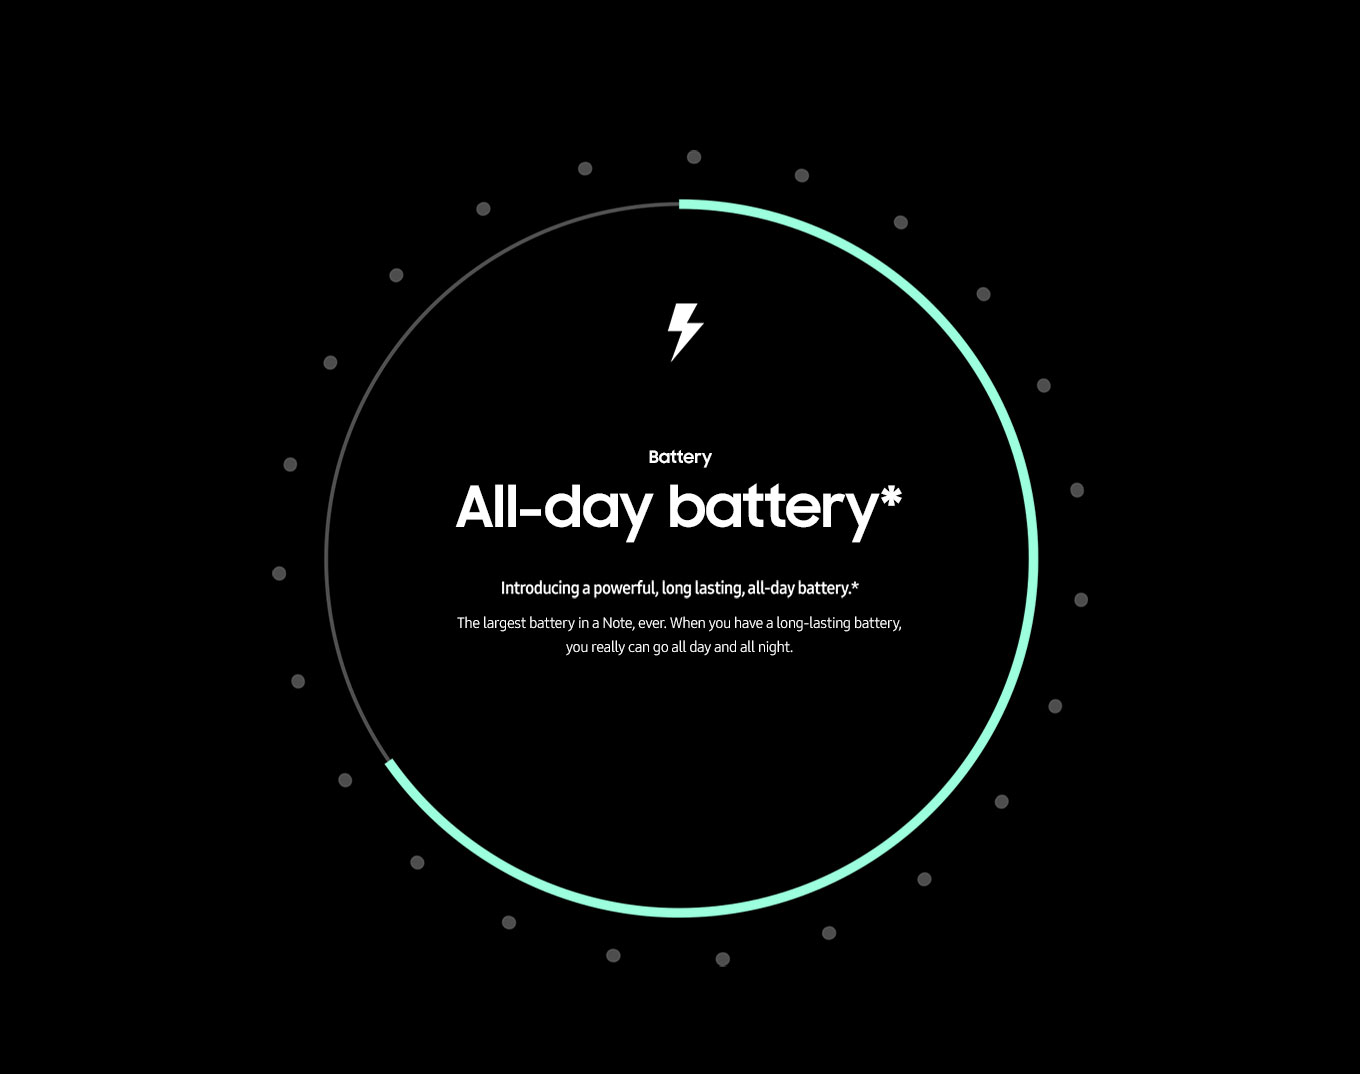 All-day battery